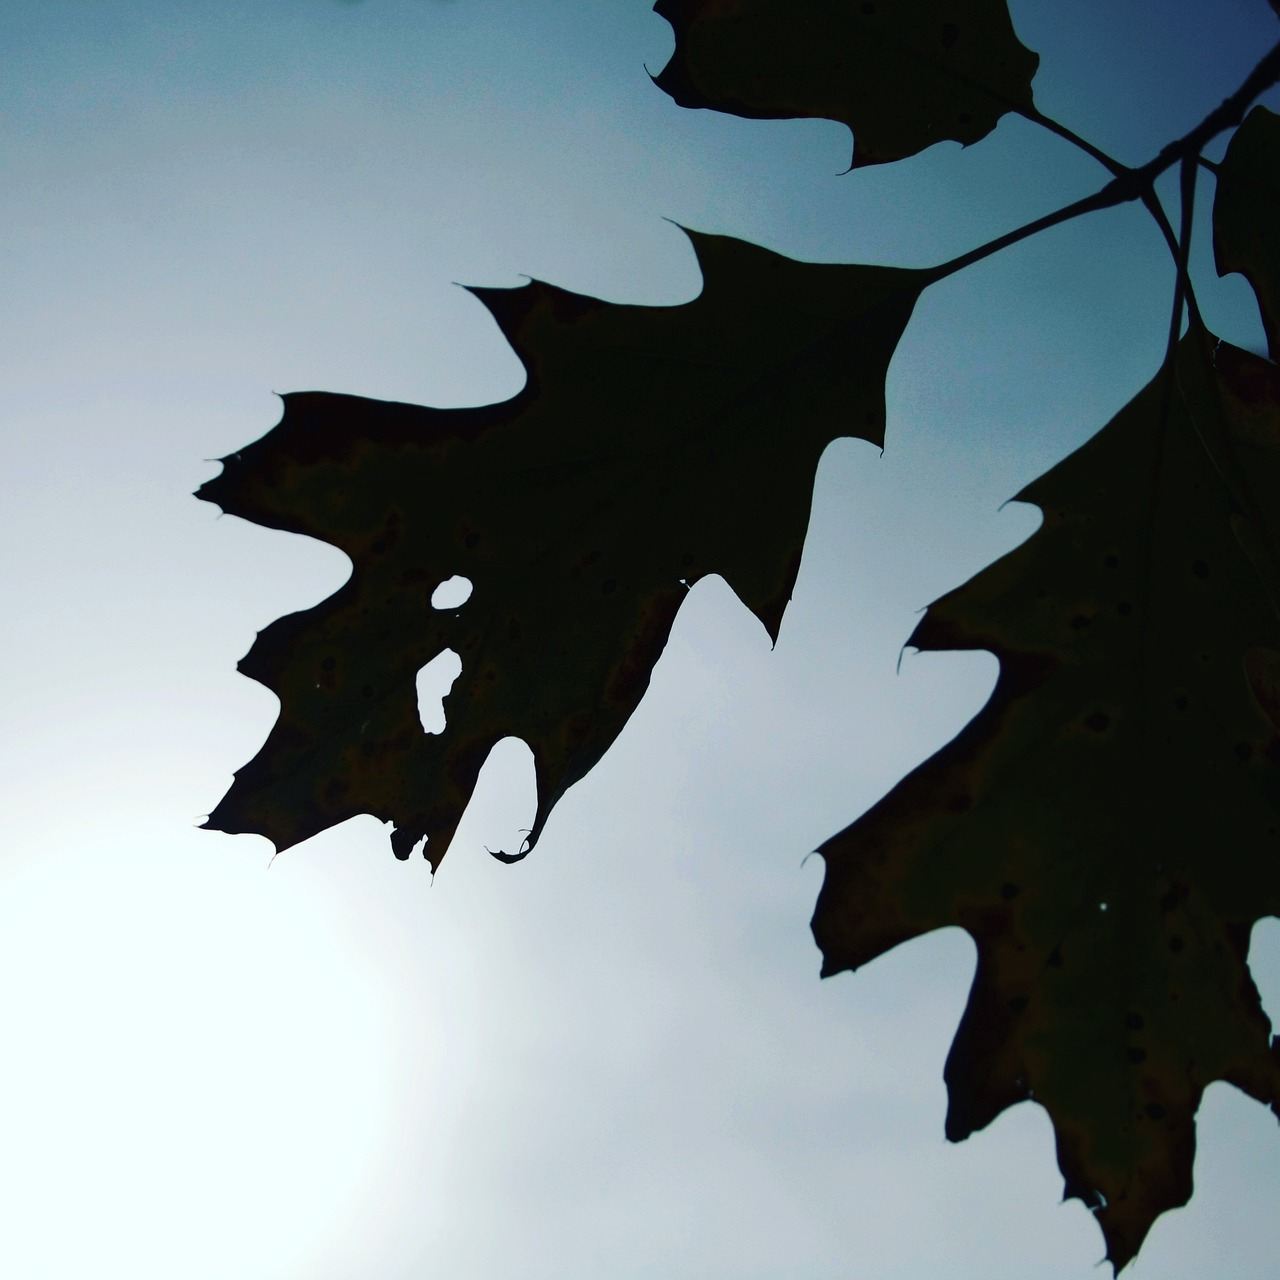 leaf leaves autumn free picture